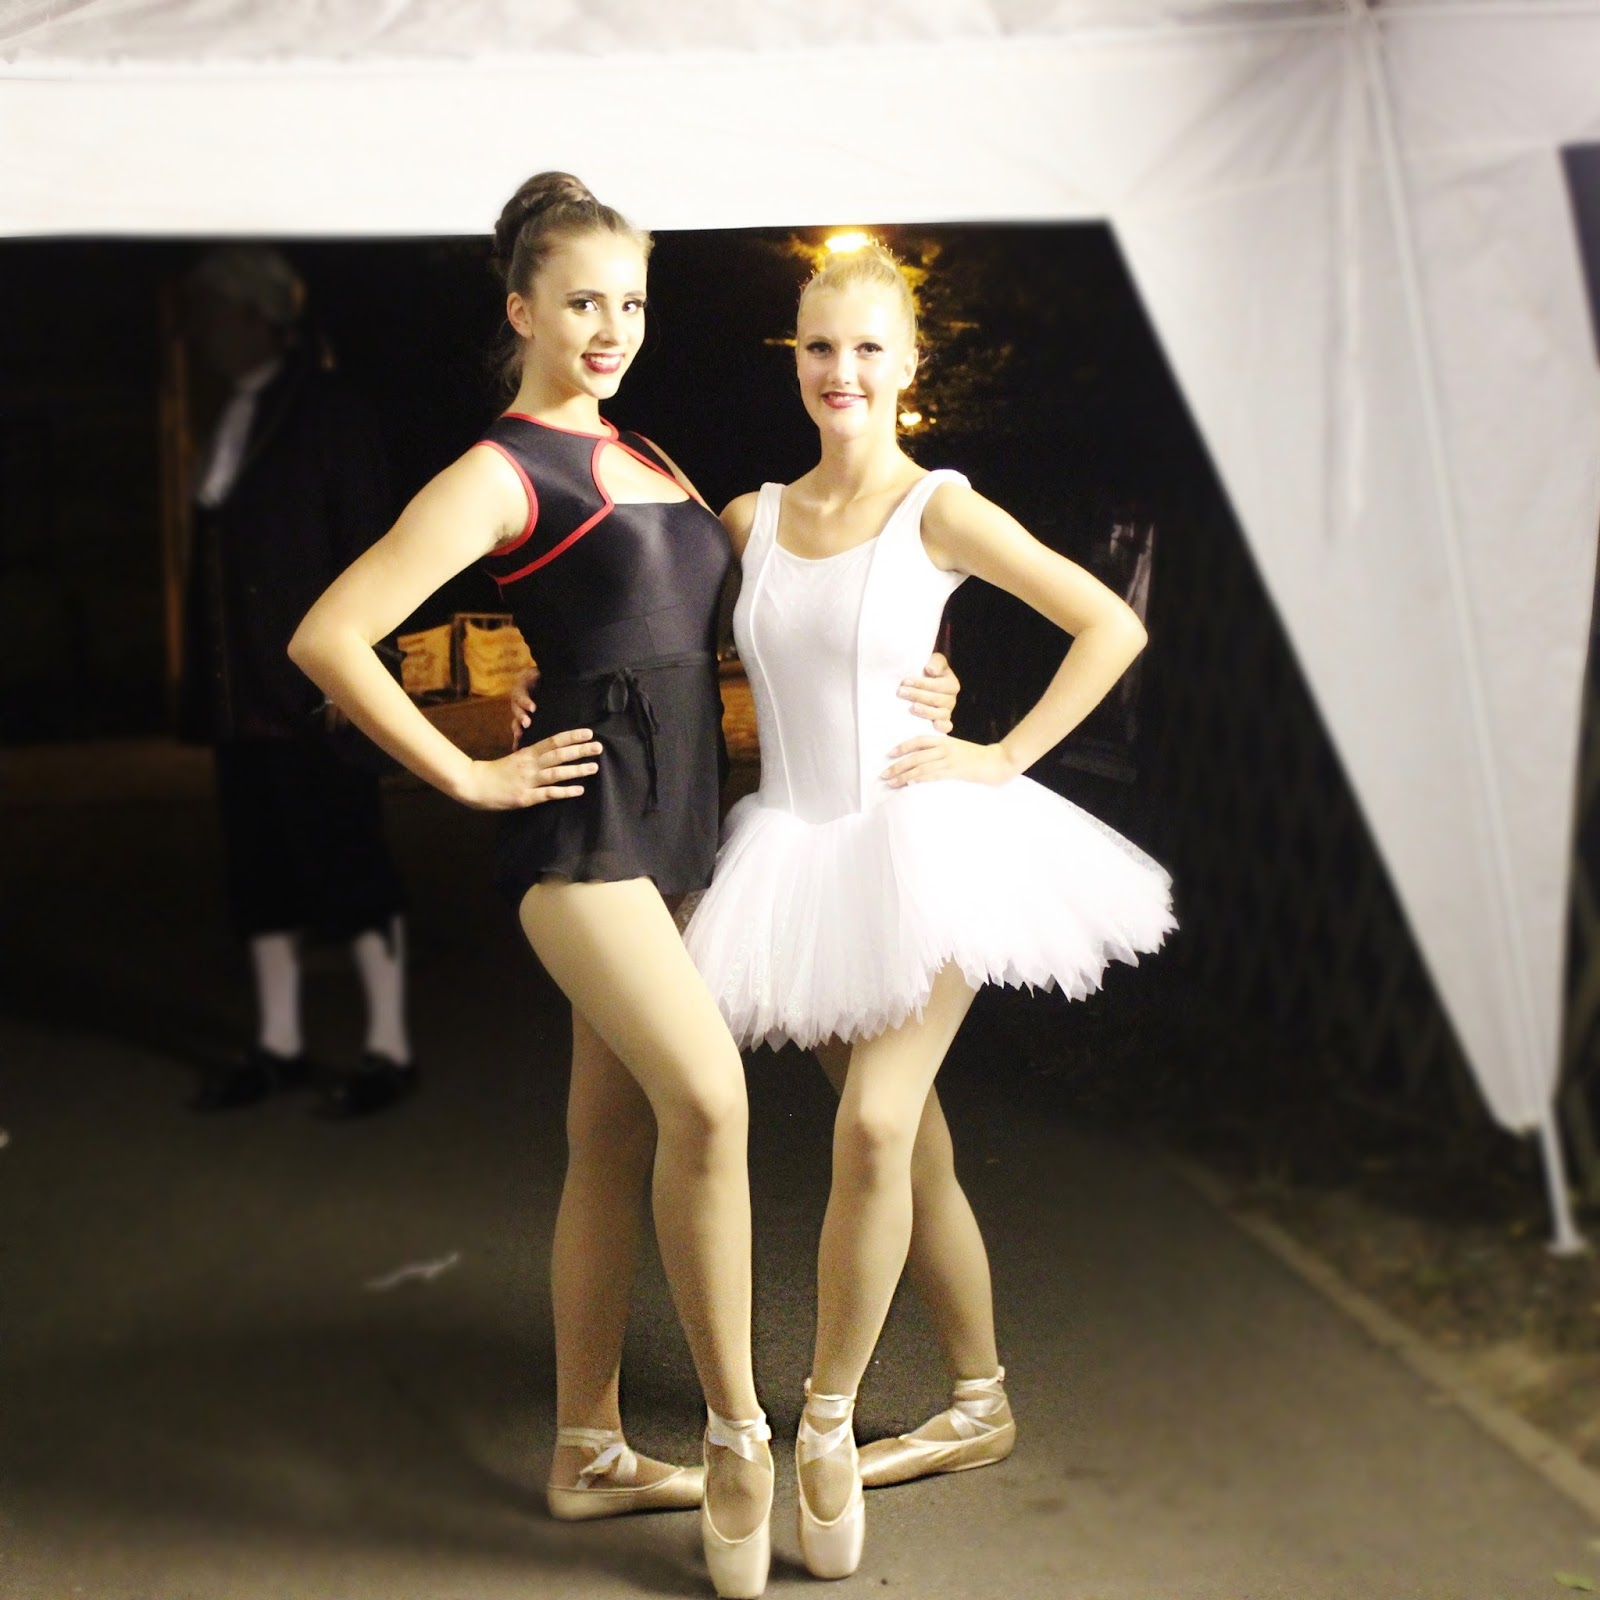 Ballerina-dancers-best-friends-ballet